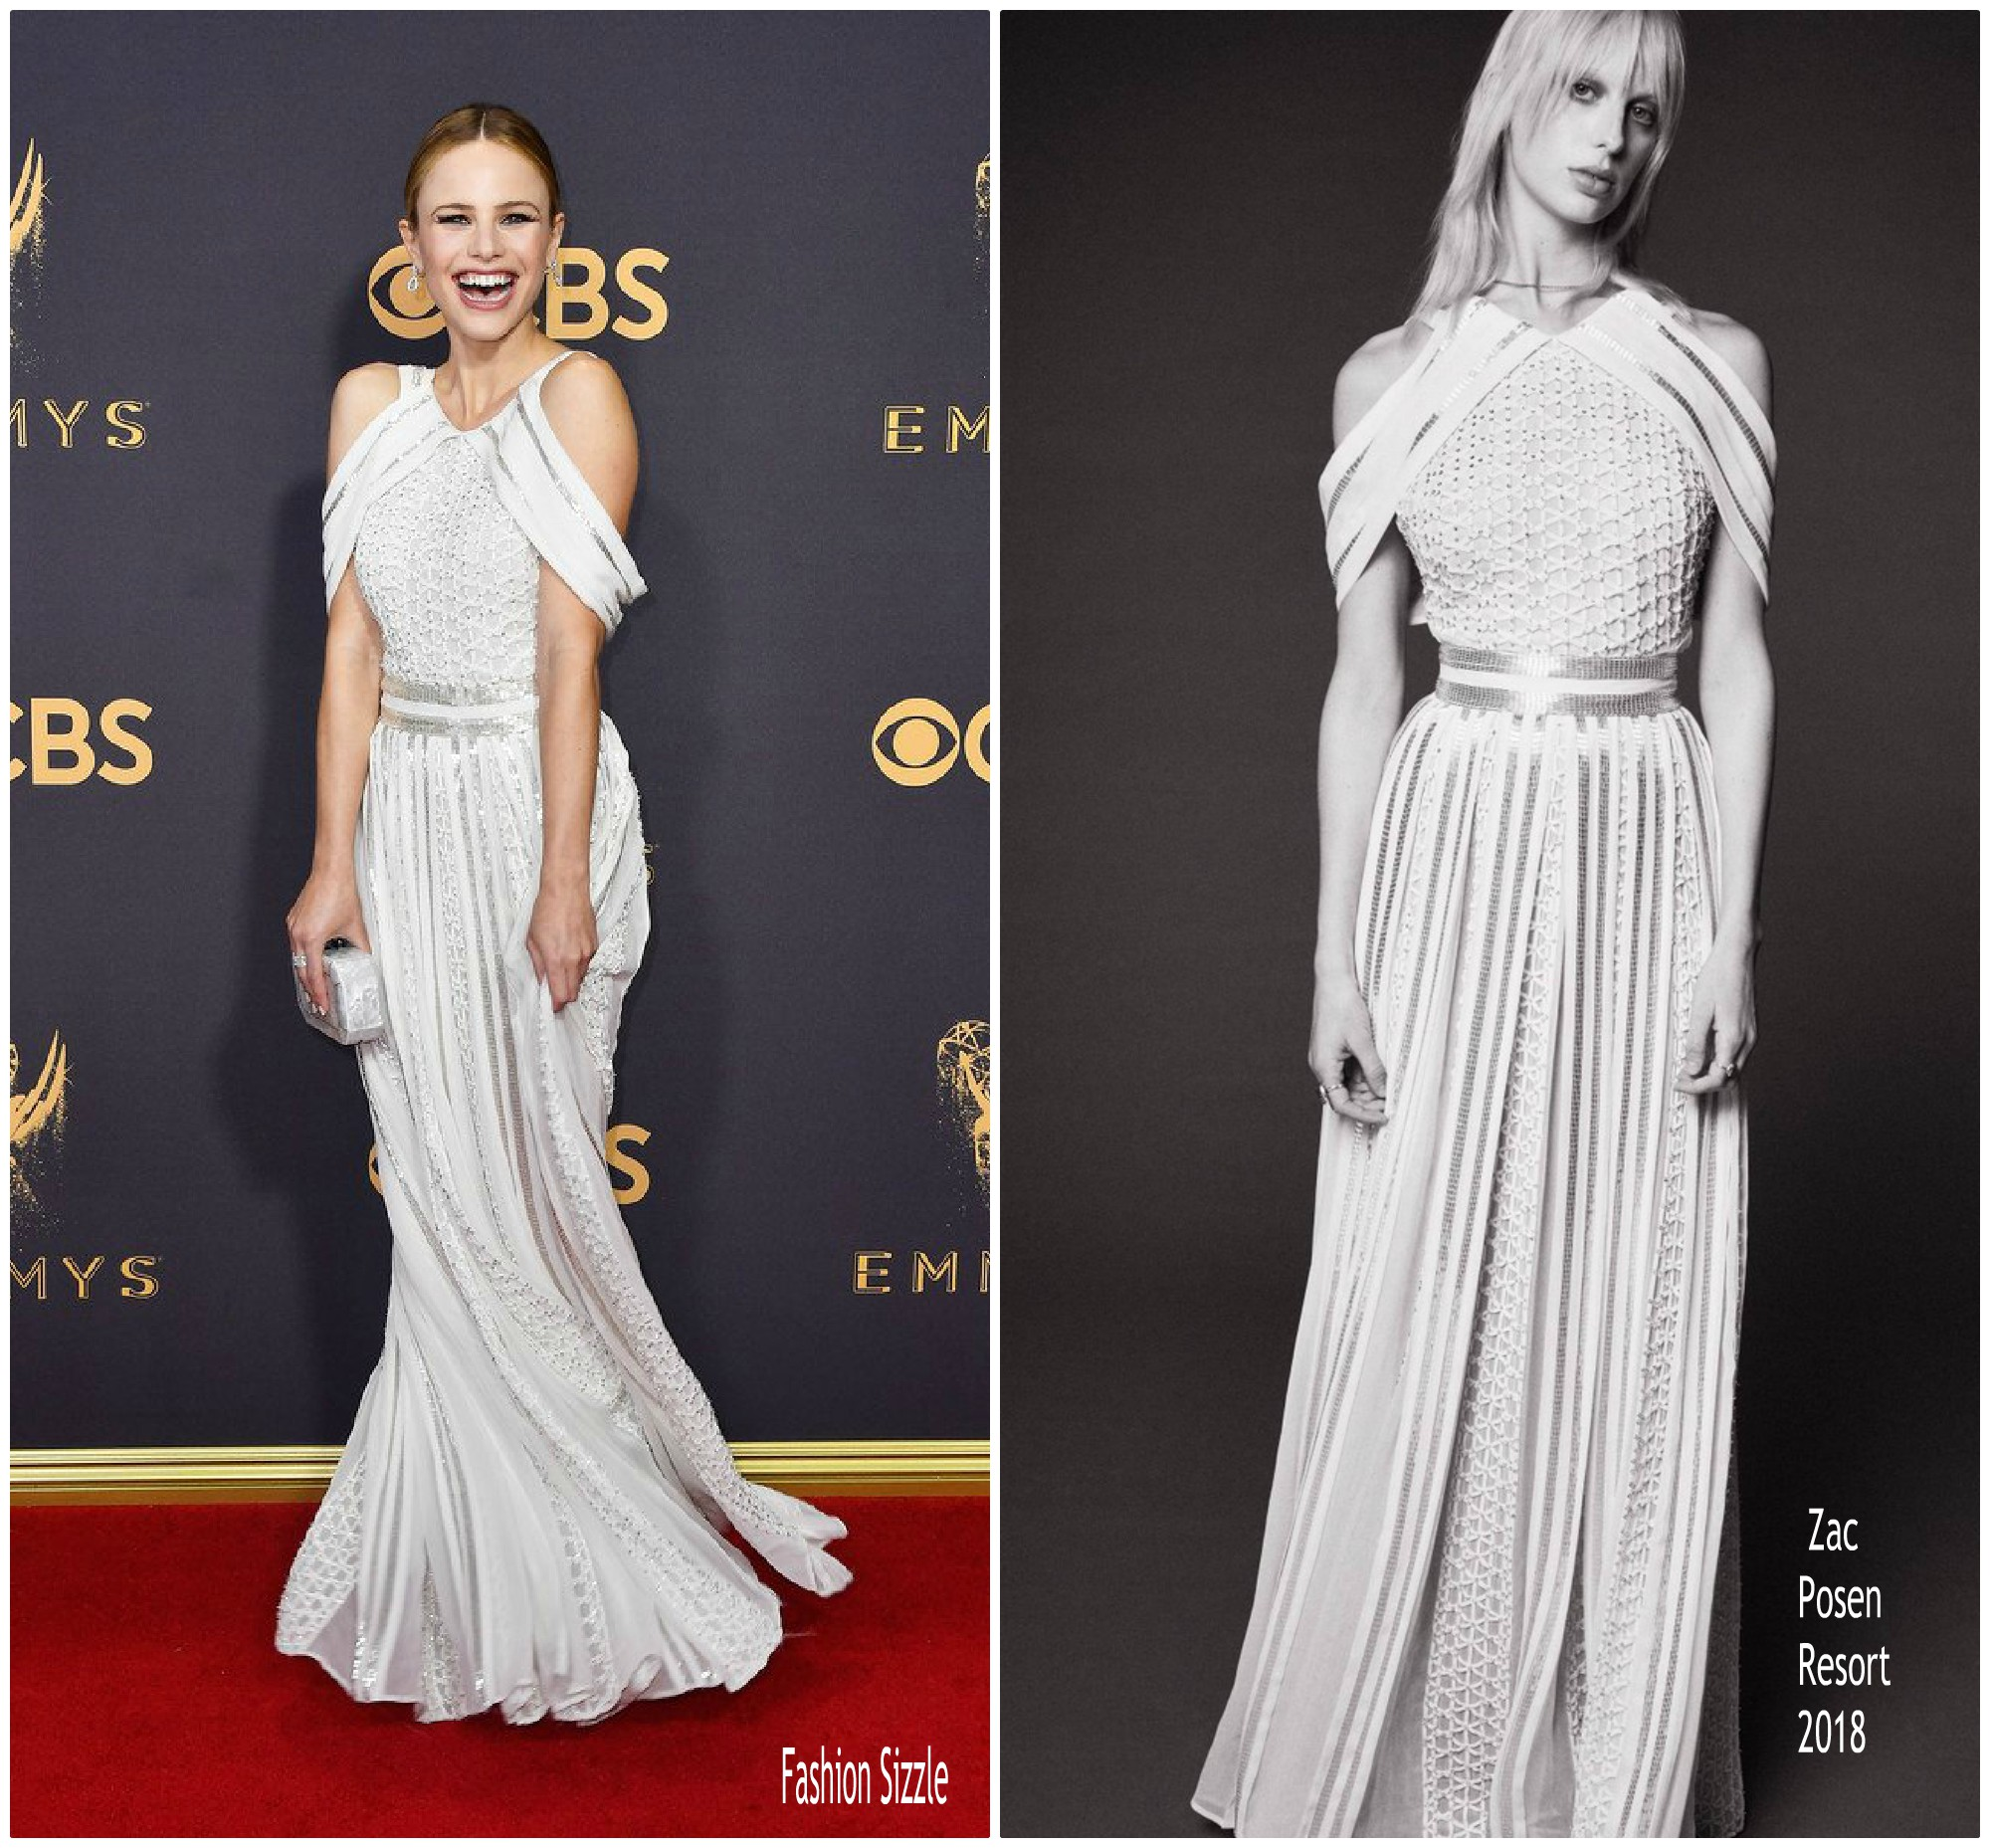 Halston Sage In Zac Posen 2017 Emmy Awards Fashionsizzle